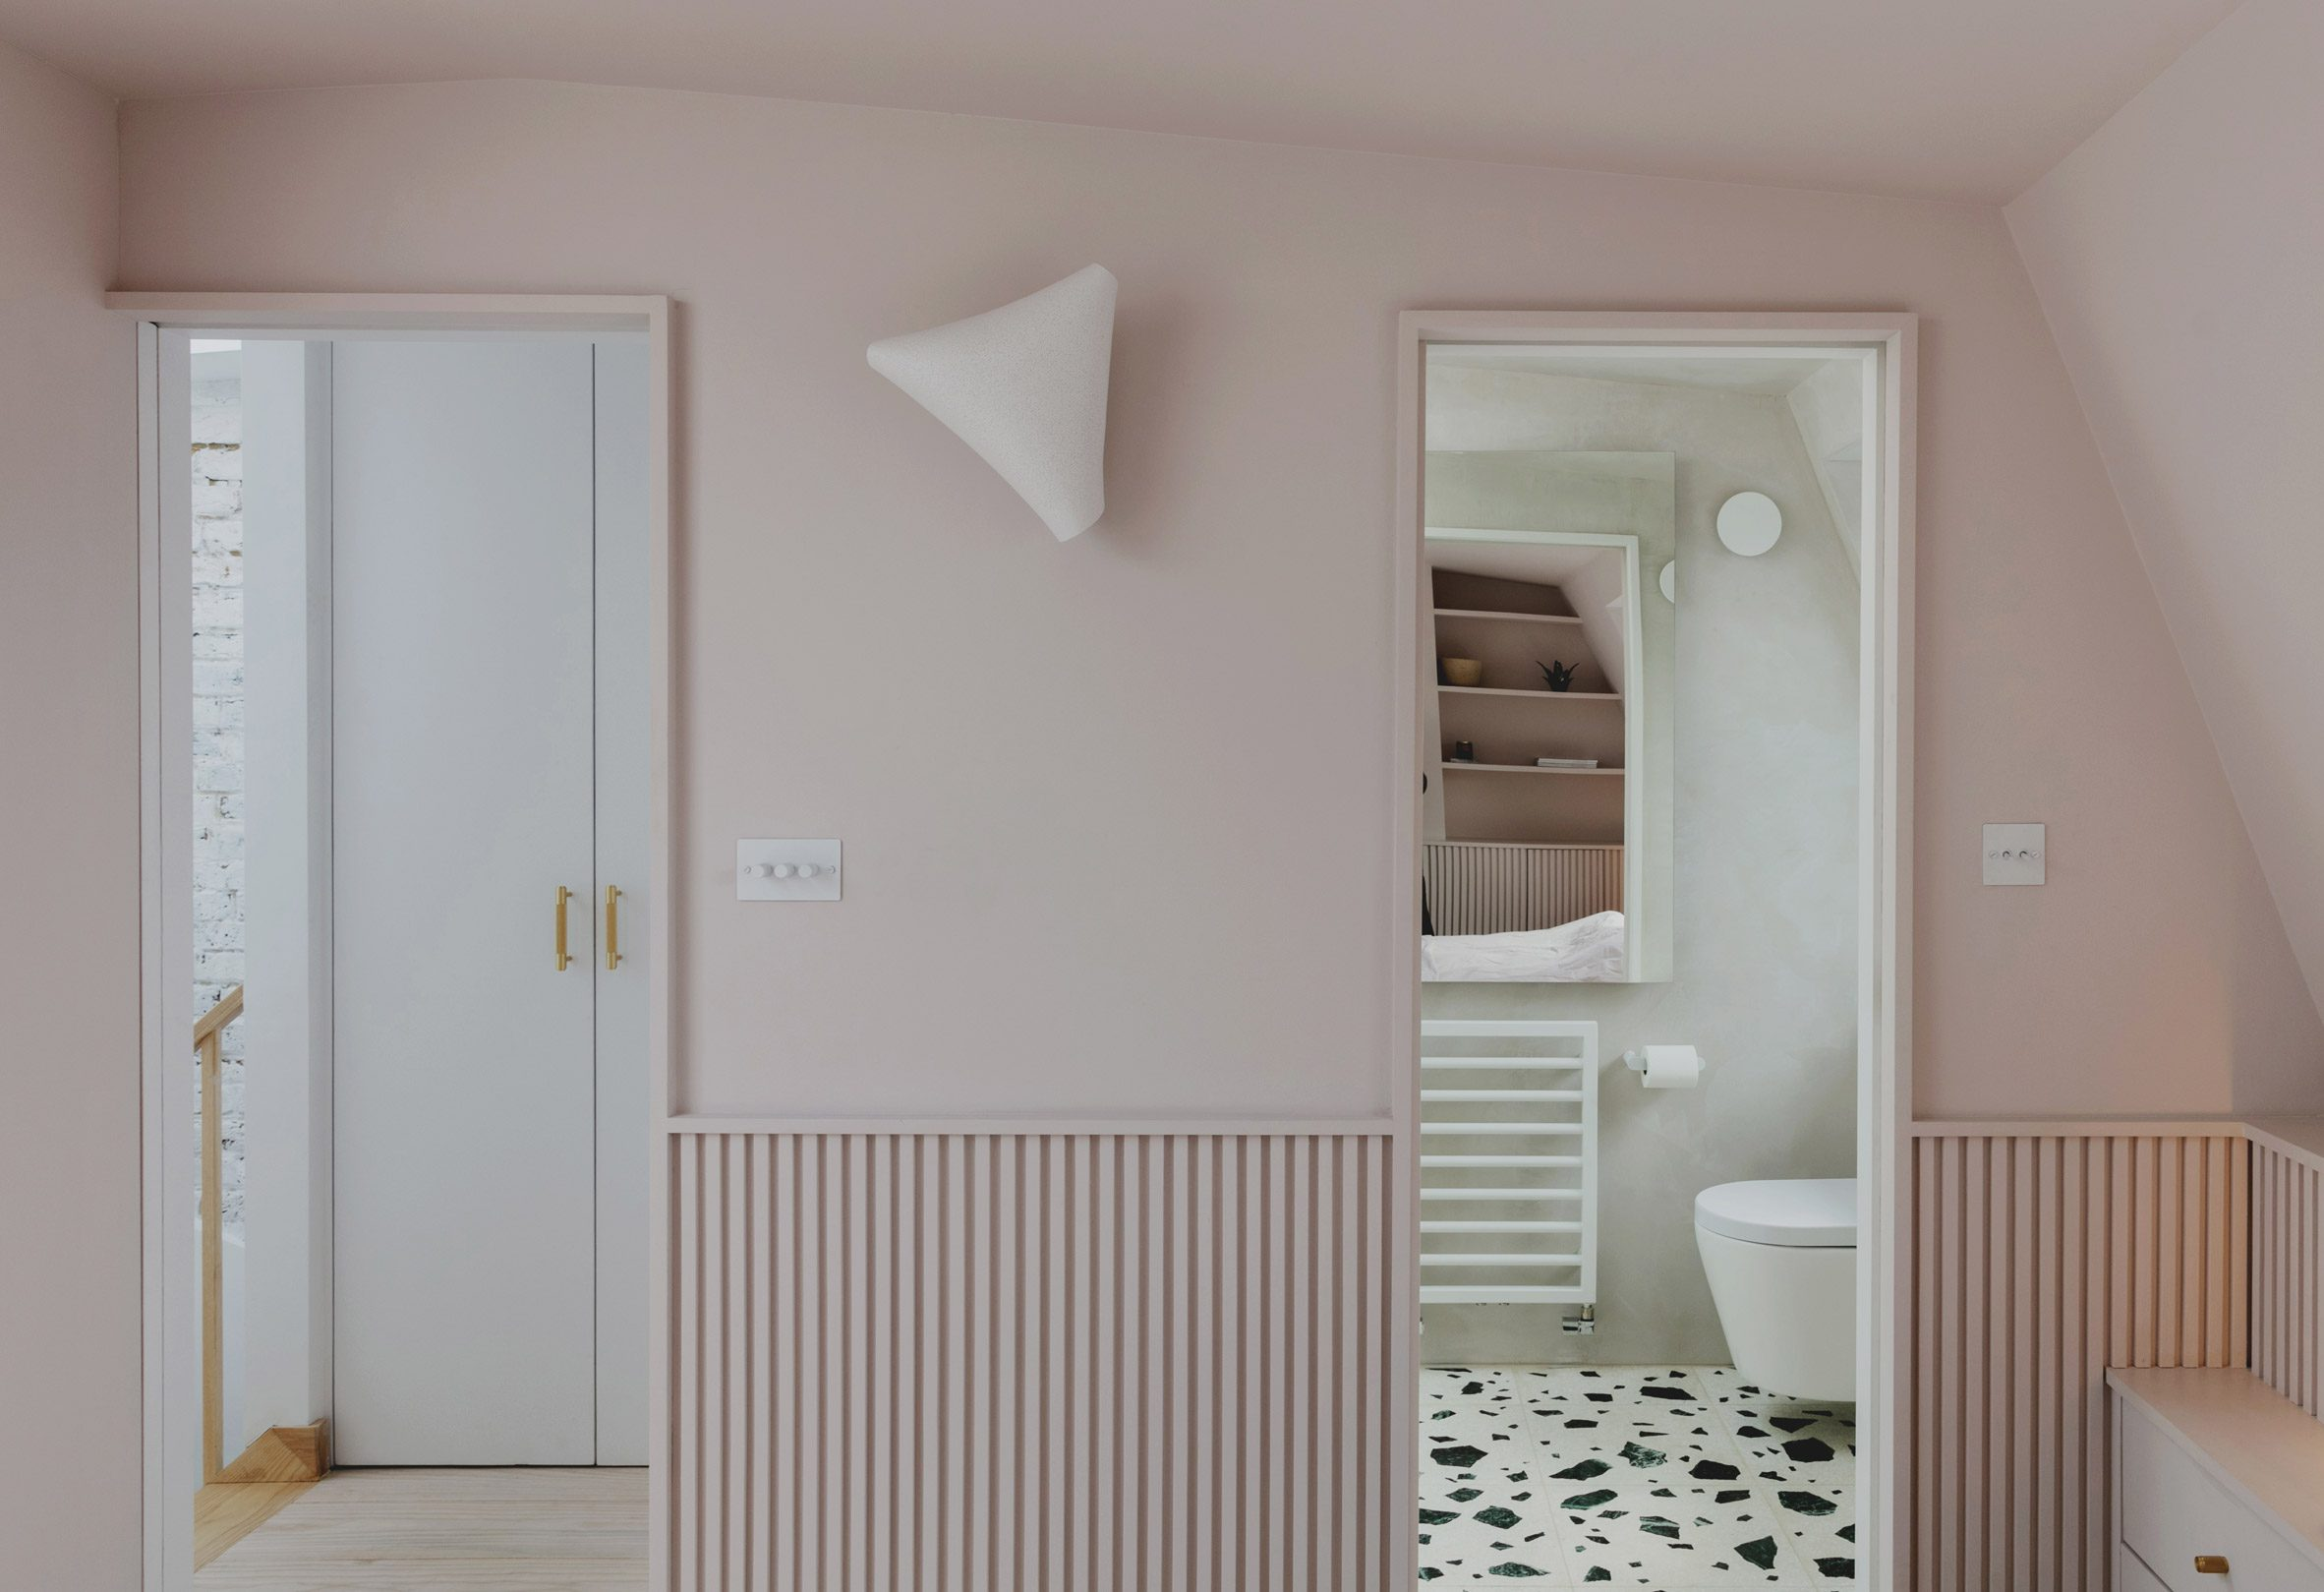 En-suite bathroom in Bed and window in Narford Road loft extension by Emil Eve Architects